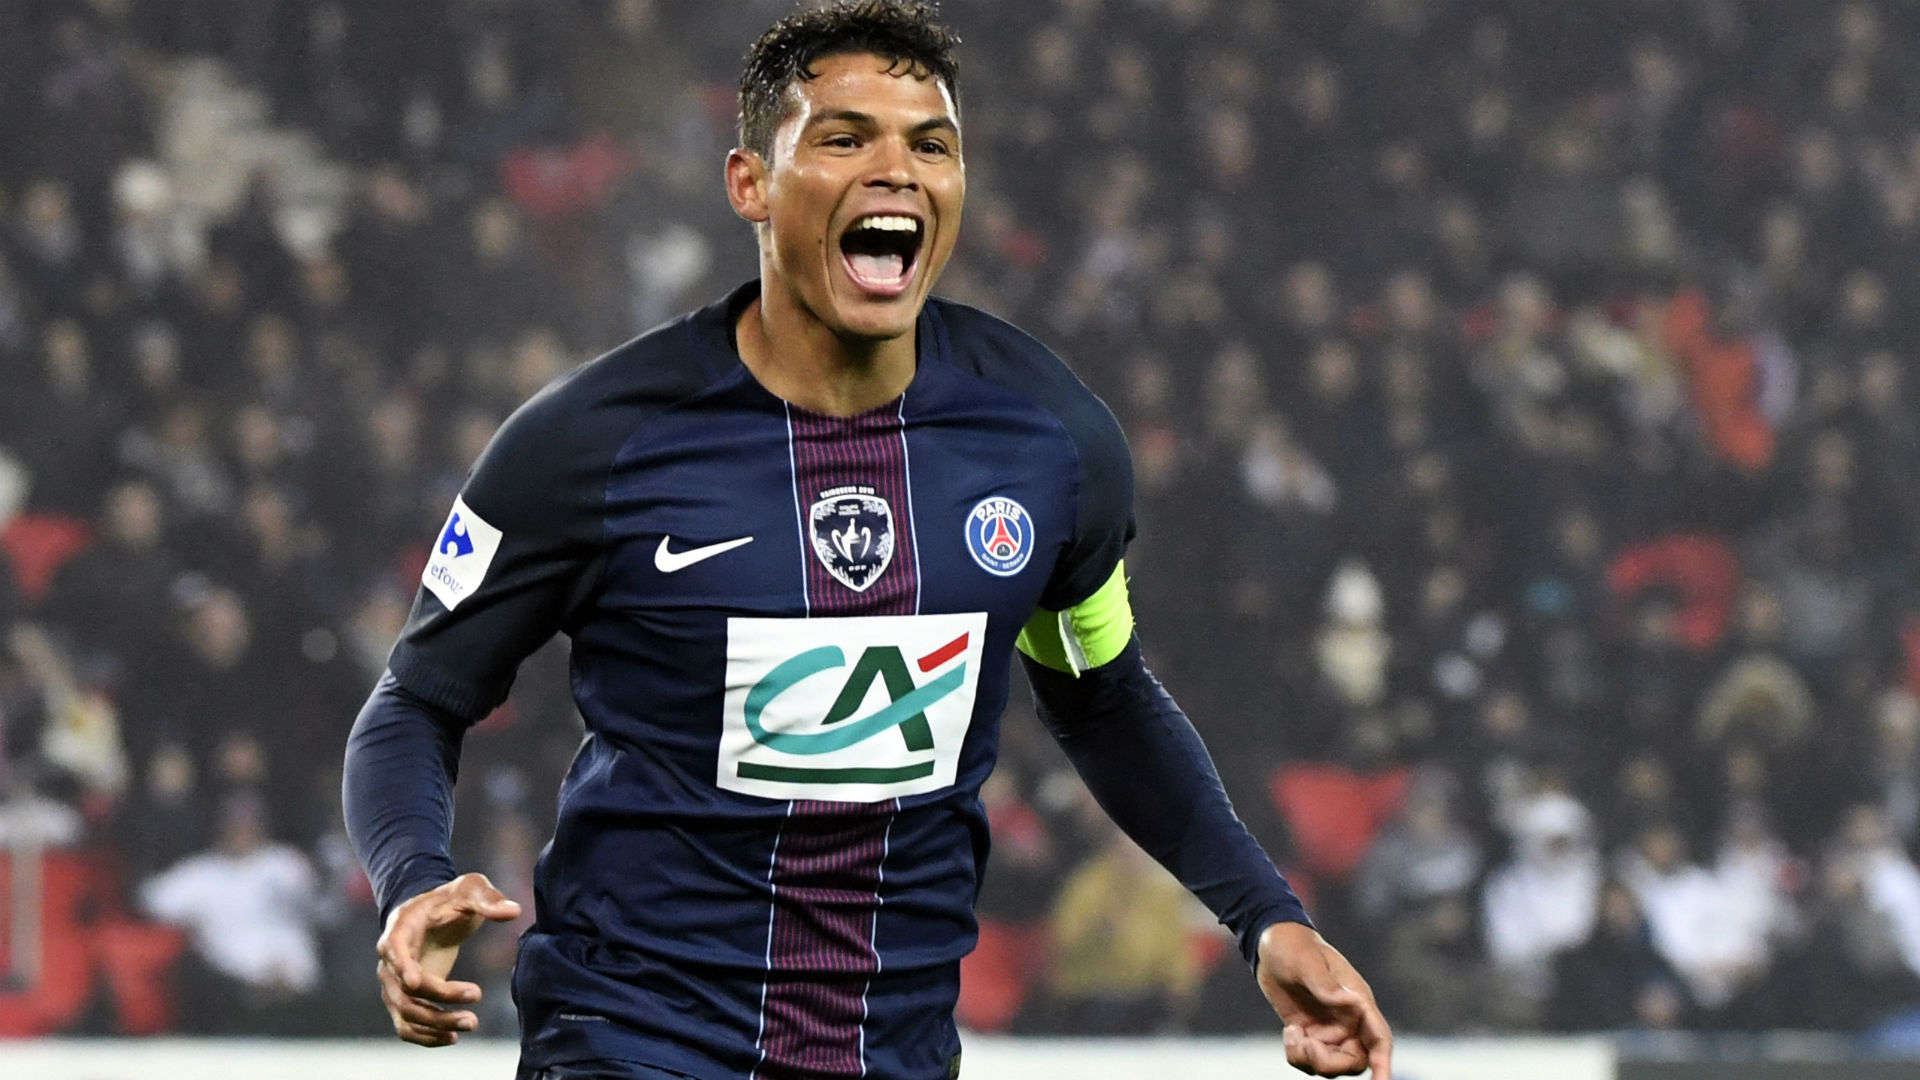 https://images.performgroup.com/di/library/Goal_France/68/76/thiago-silva-paris-sg-bastia-coupe-de-france-07112017_opgzld9enzg71i9uhwn3fcvo9.jpg